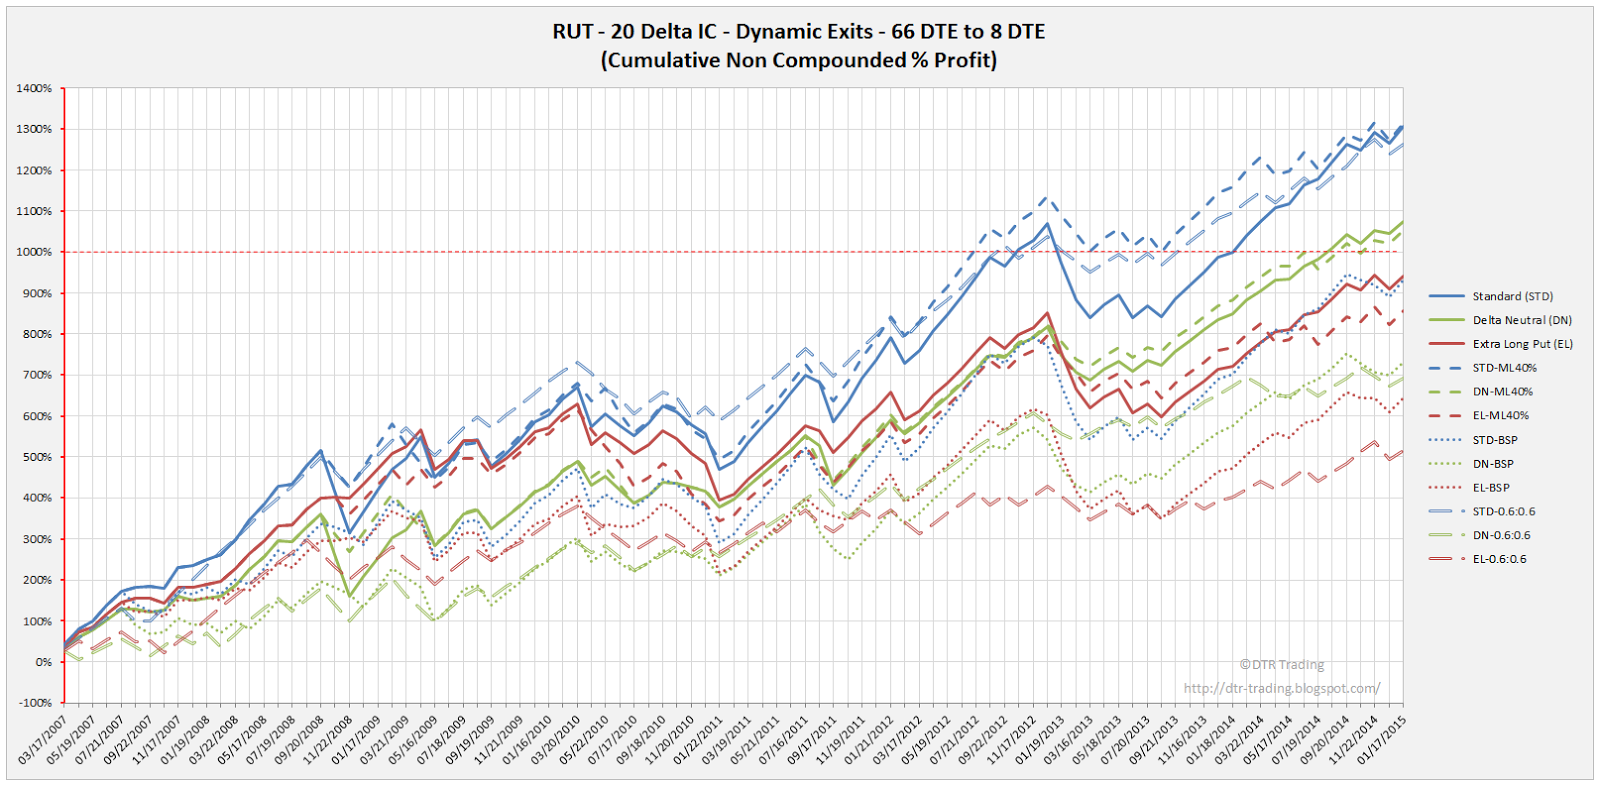 Iron Condor Dynamic Exit Equity Curves RUT 66 DTE 20 Delta All Versions